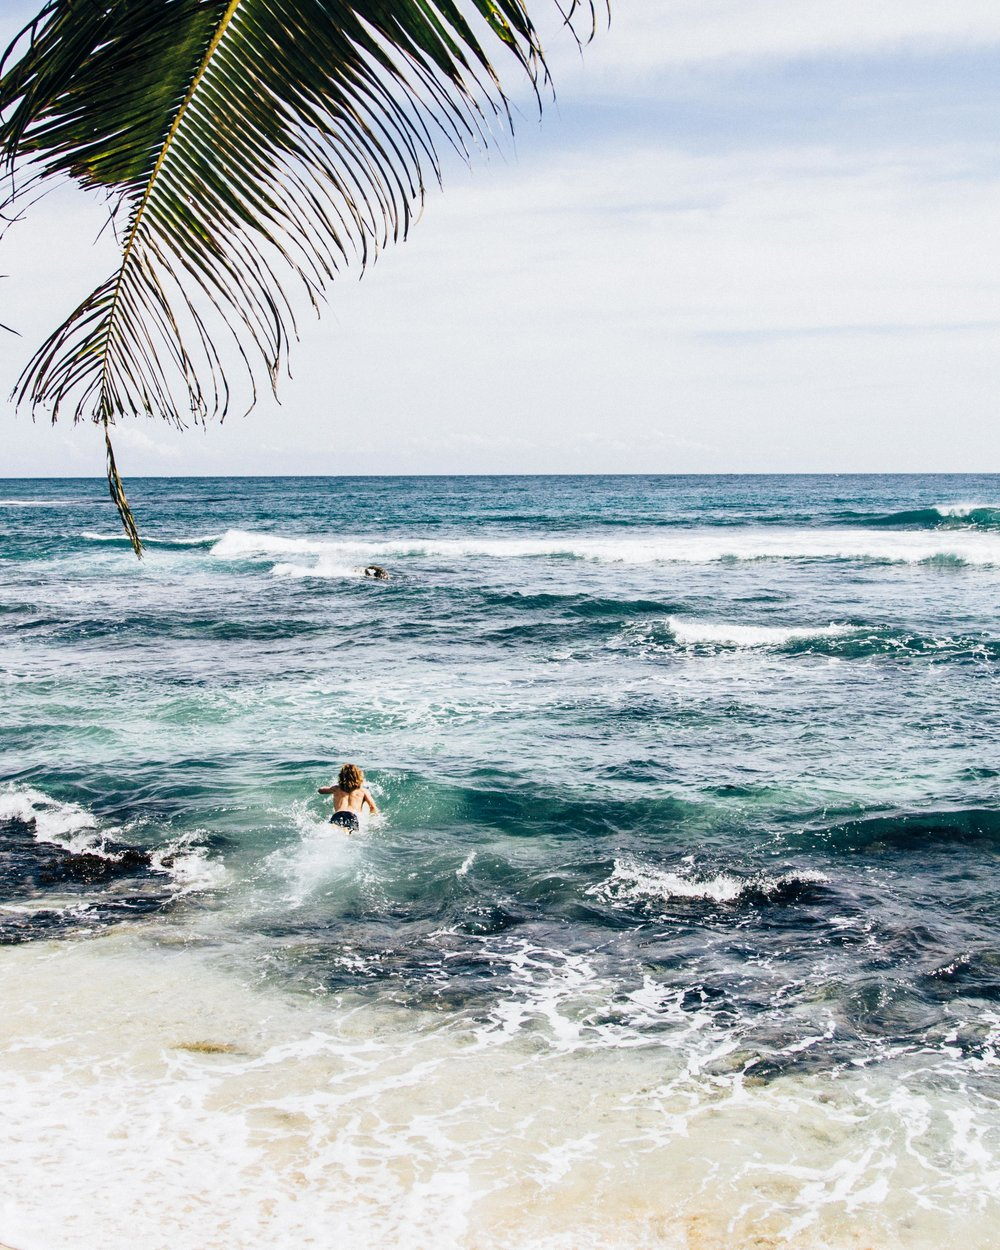 If Sri Lanka isn't your surf paradise, we don't know what's wrong with you. A typical beach view in Sri Lanka. Photo by Morgan Woods and Christian Quinlan